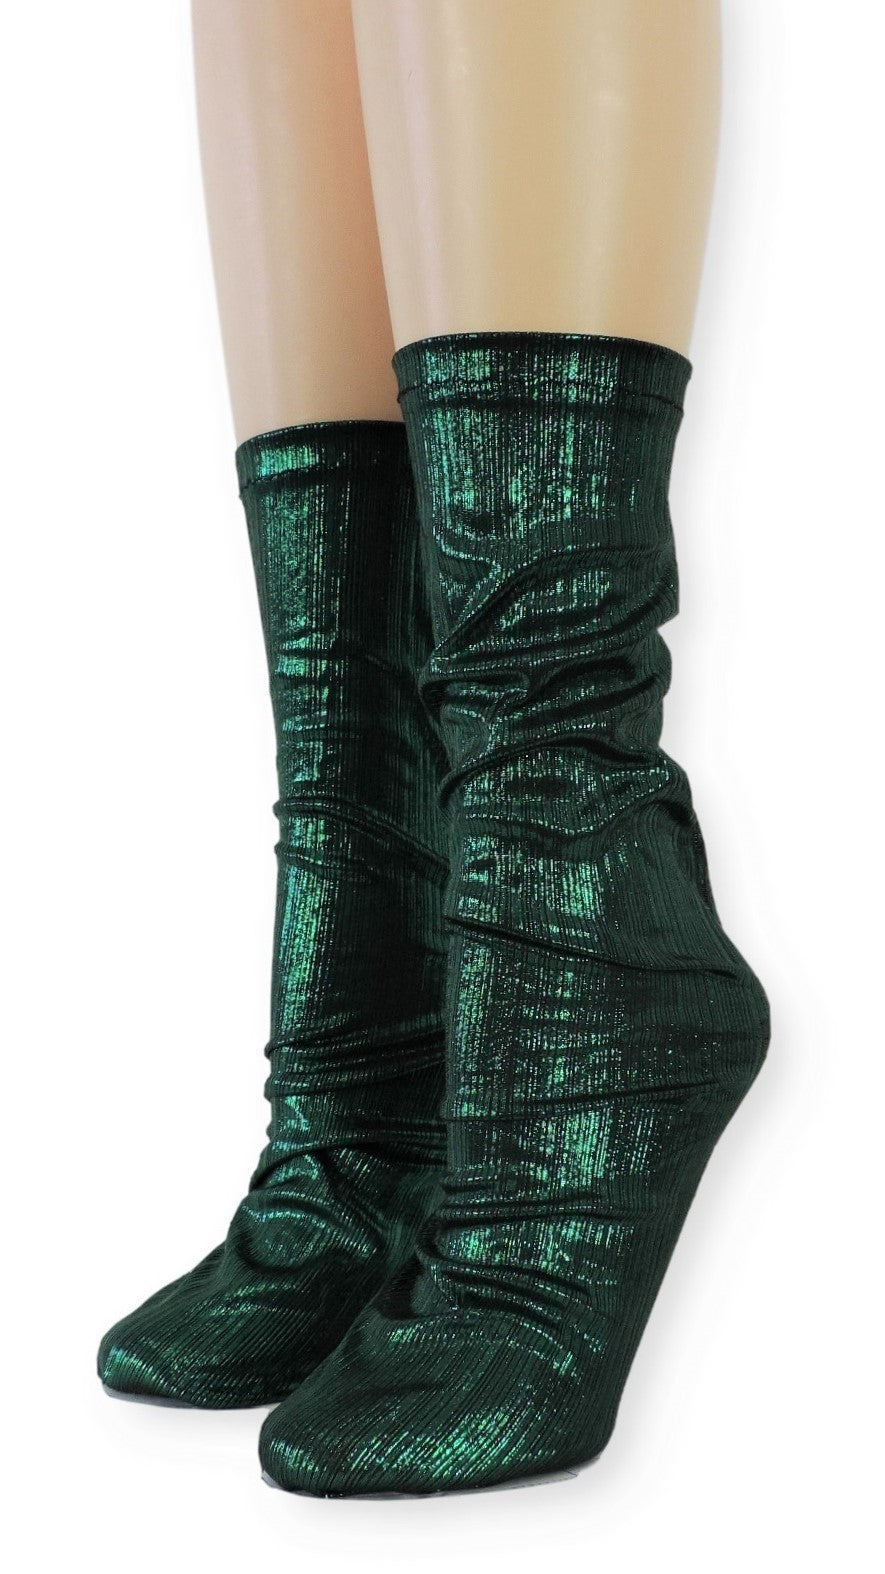 Myrtle Reflective Socks